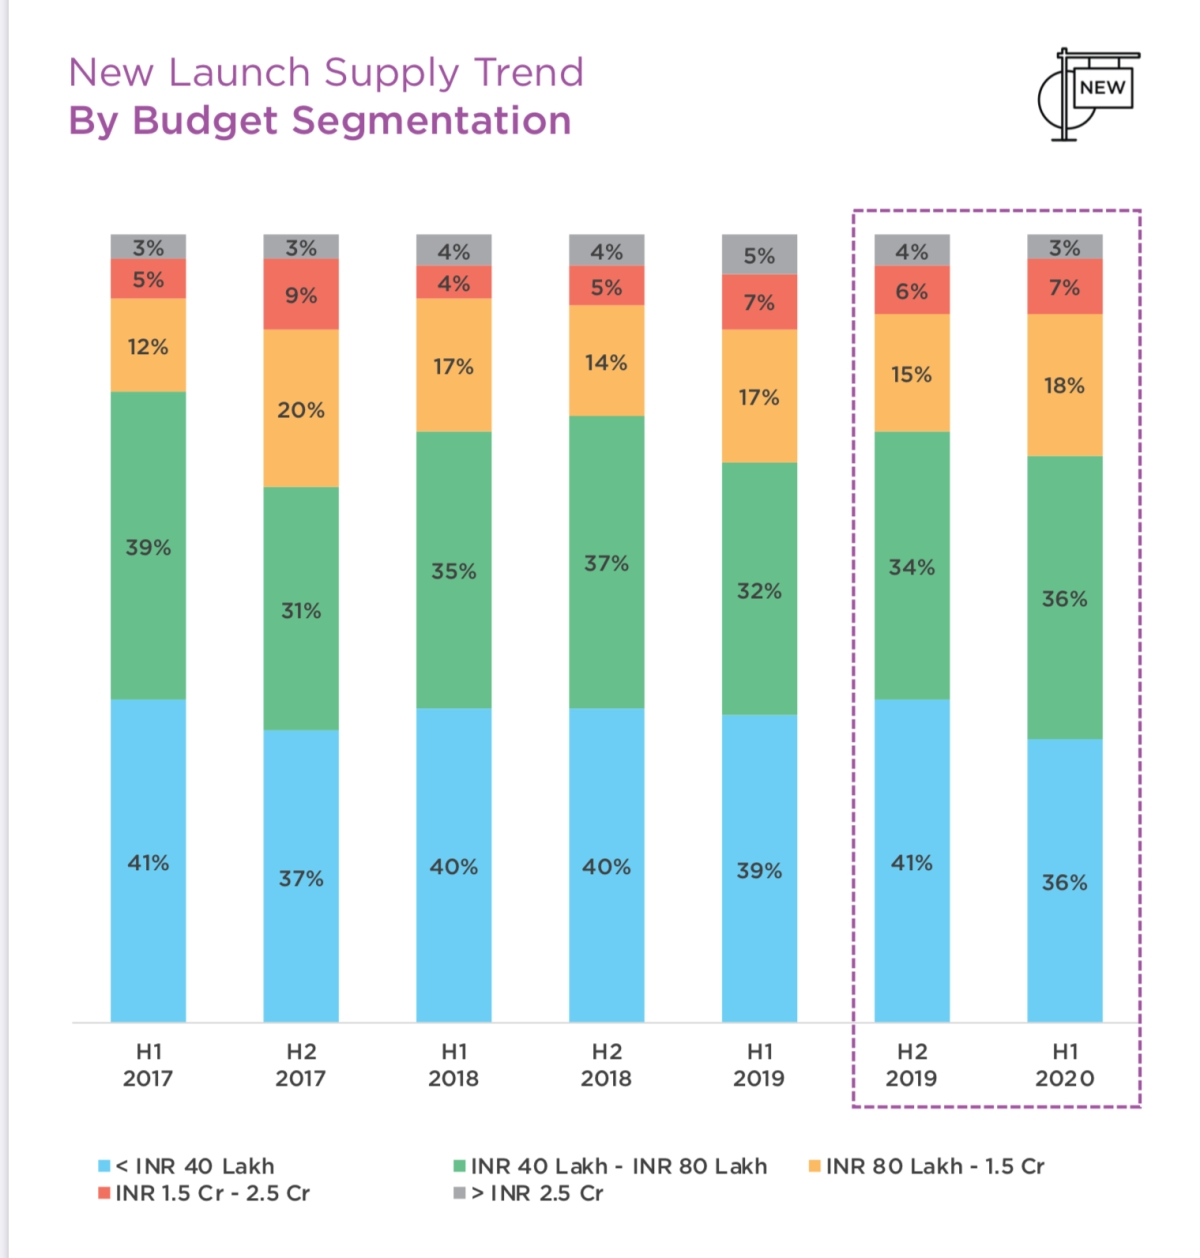 New Launch Supply Trend By Budget Segmentation